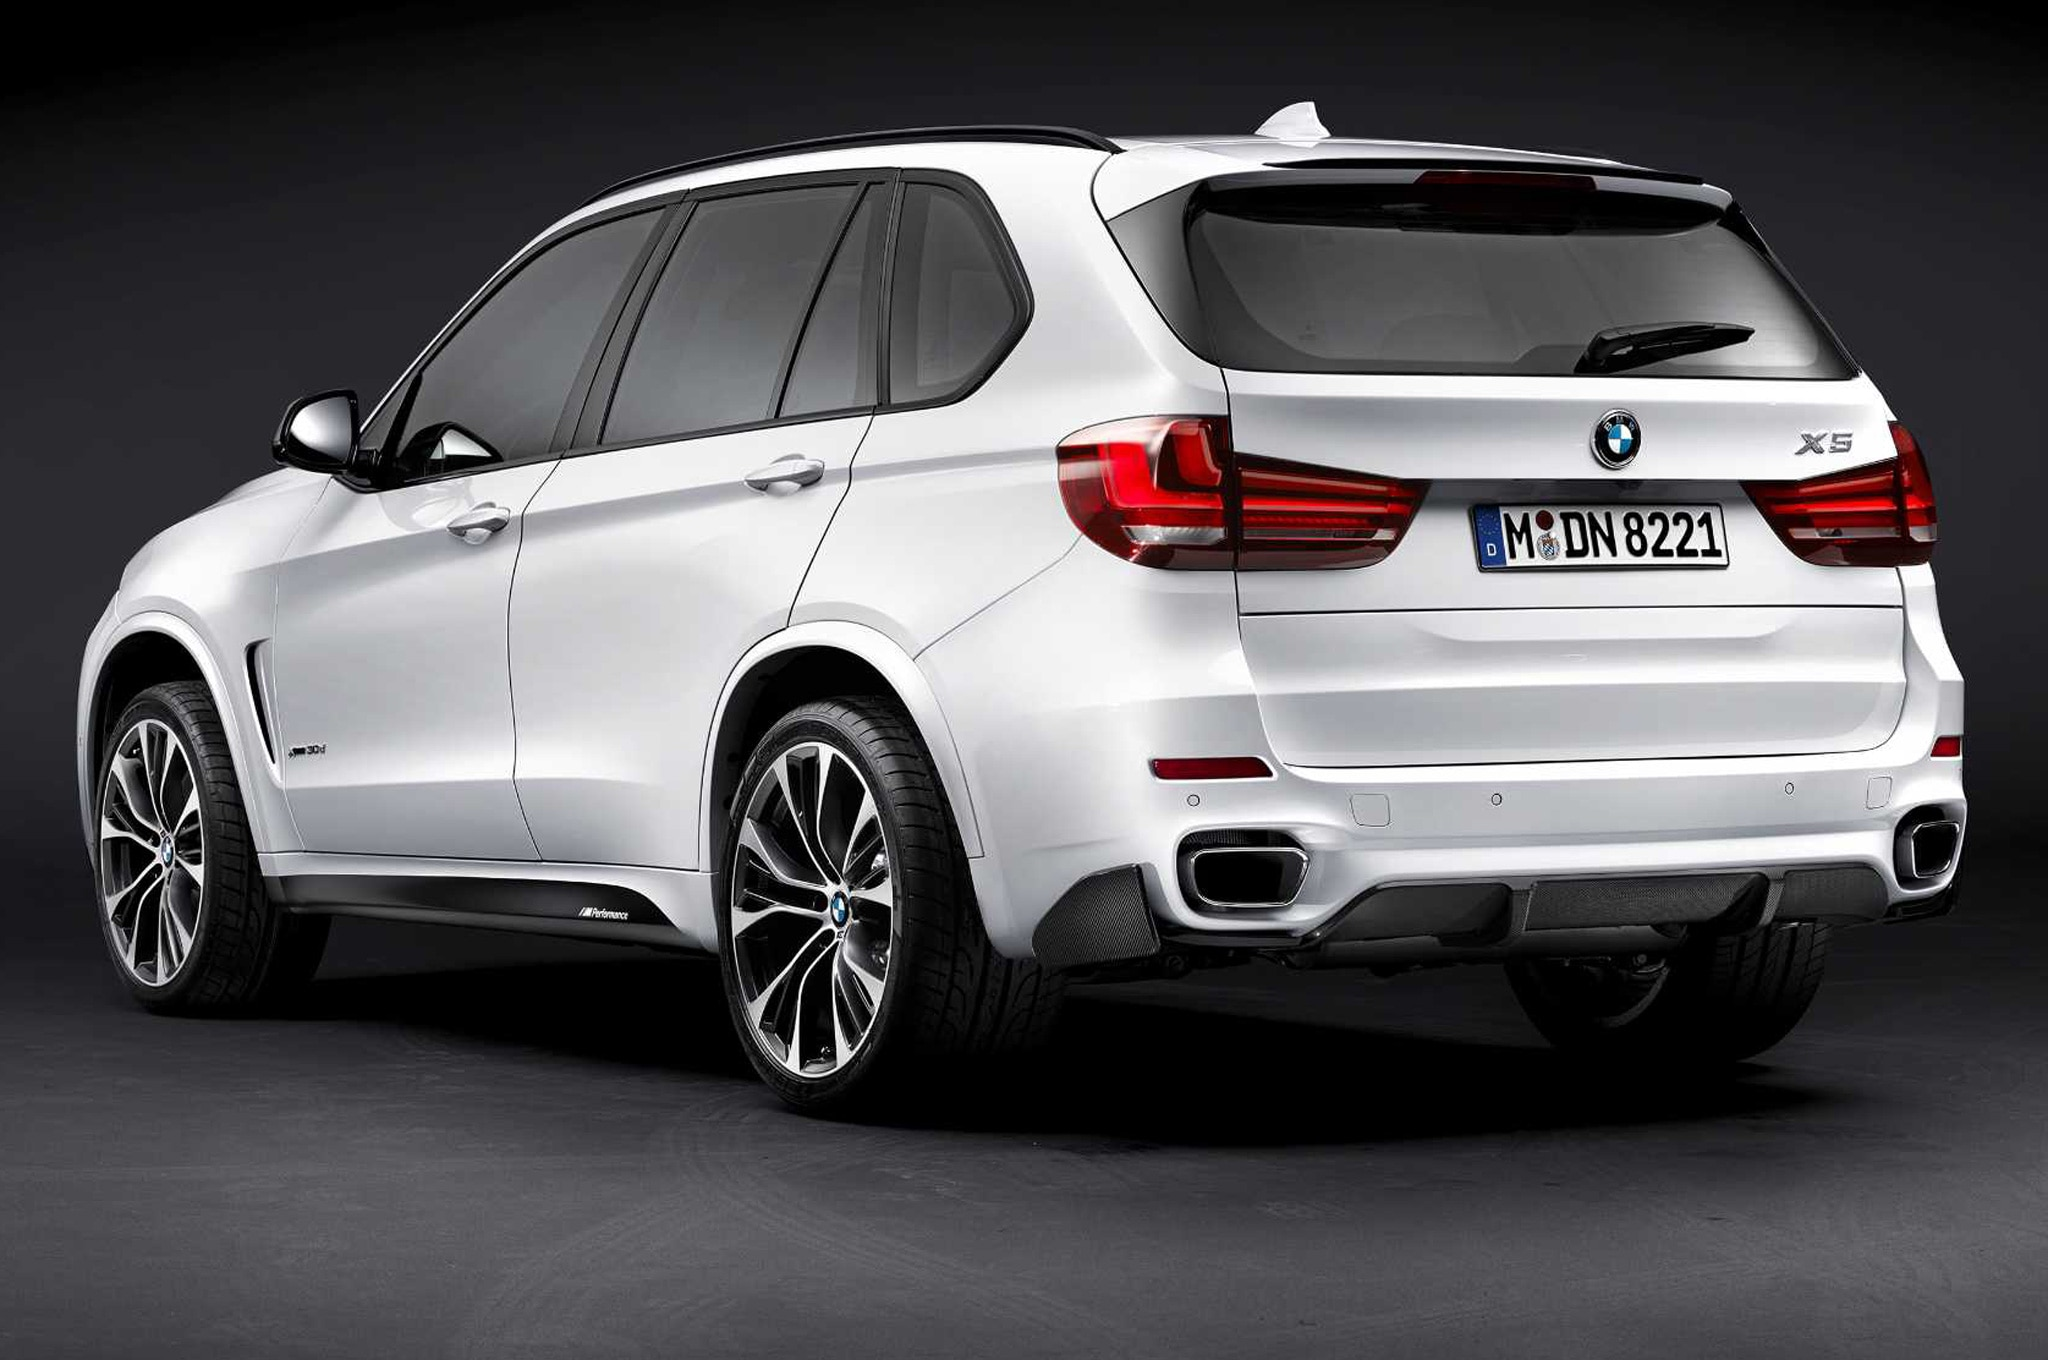 2014 BMW X5 With Performance Parts Rear View2